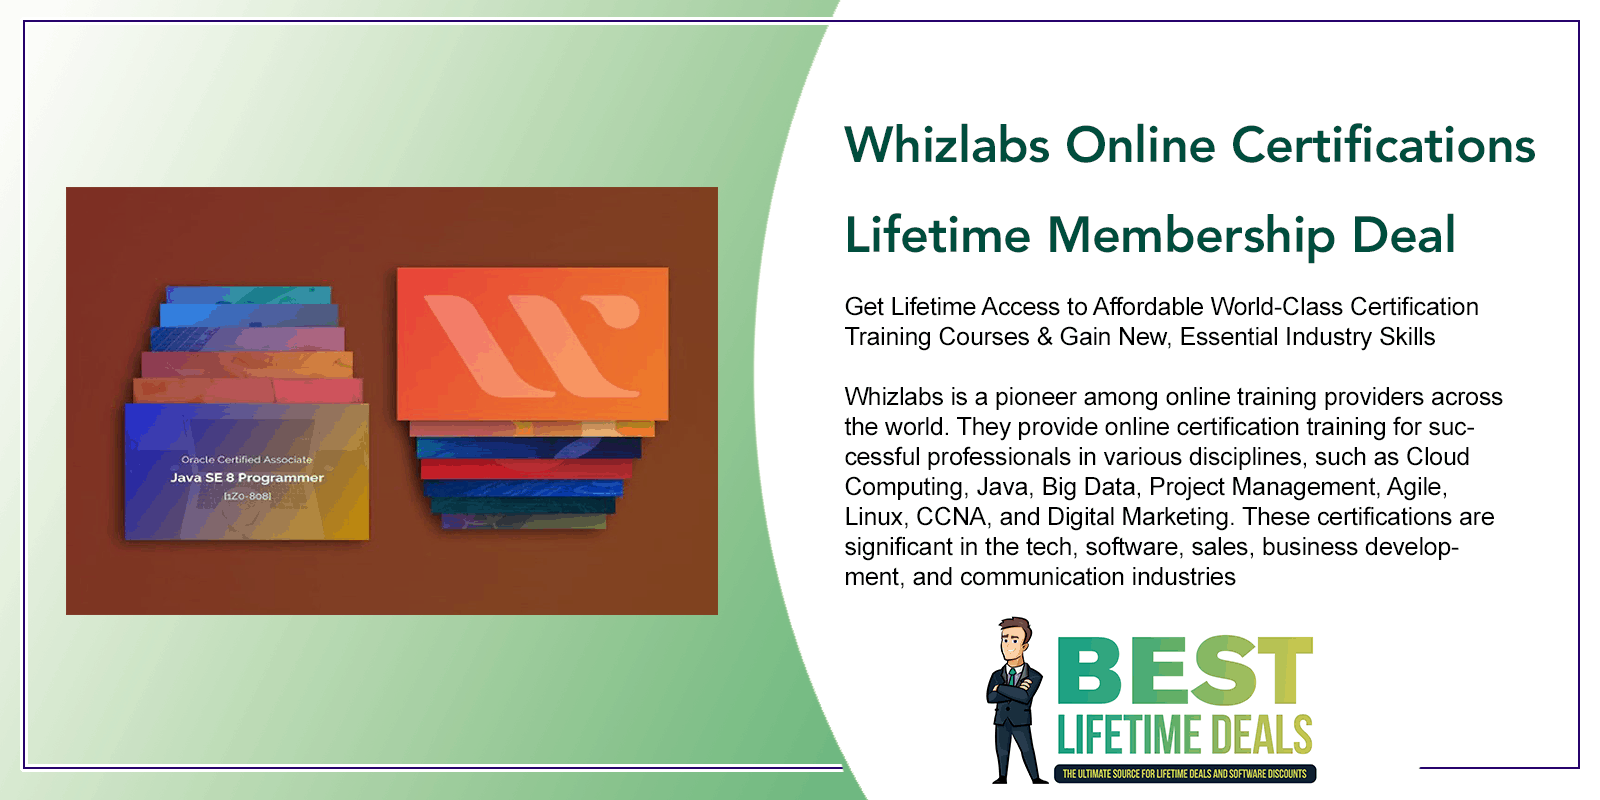 Whizlabs Online Certifications Featured Image